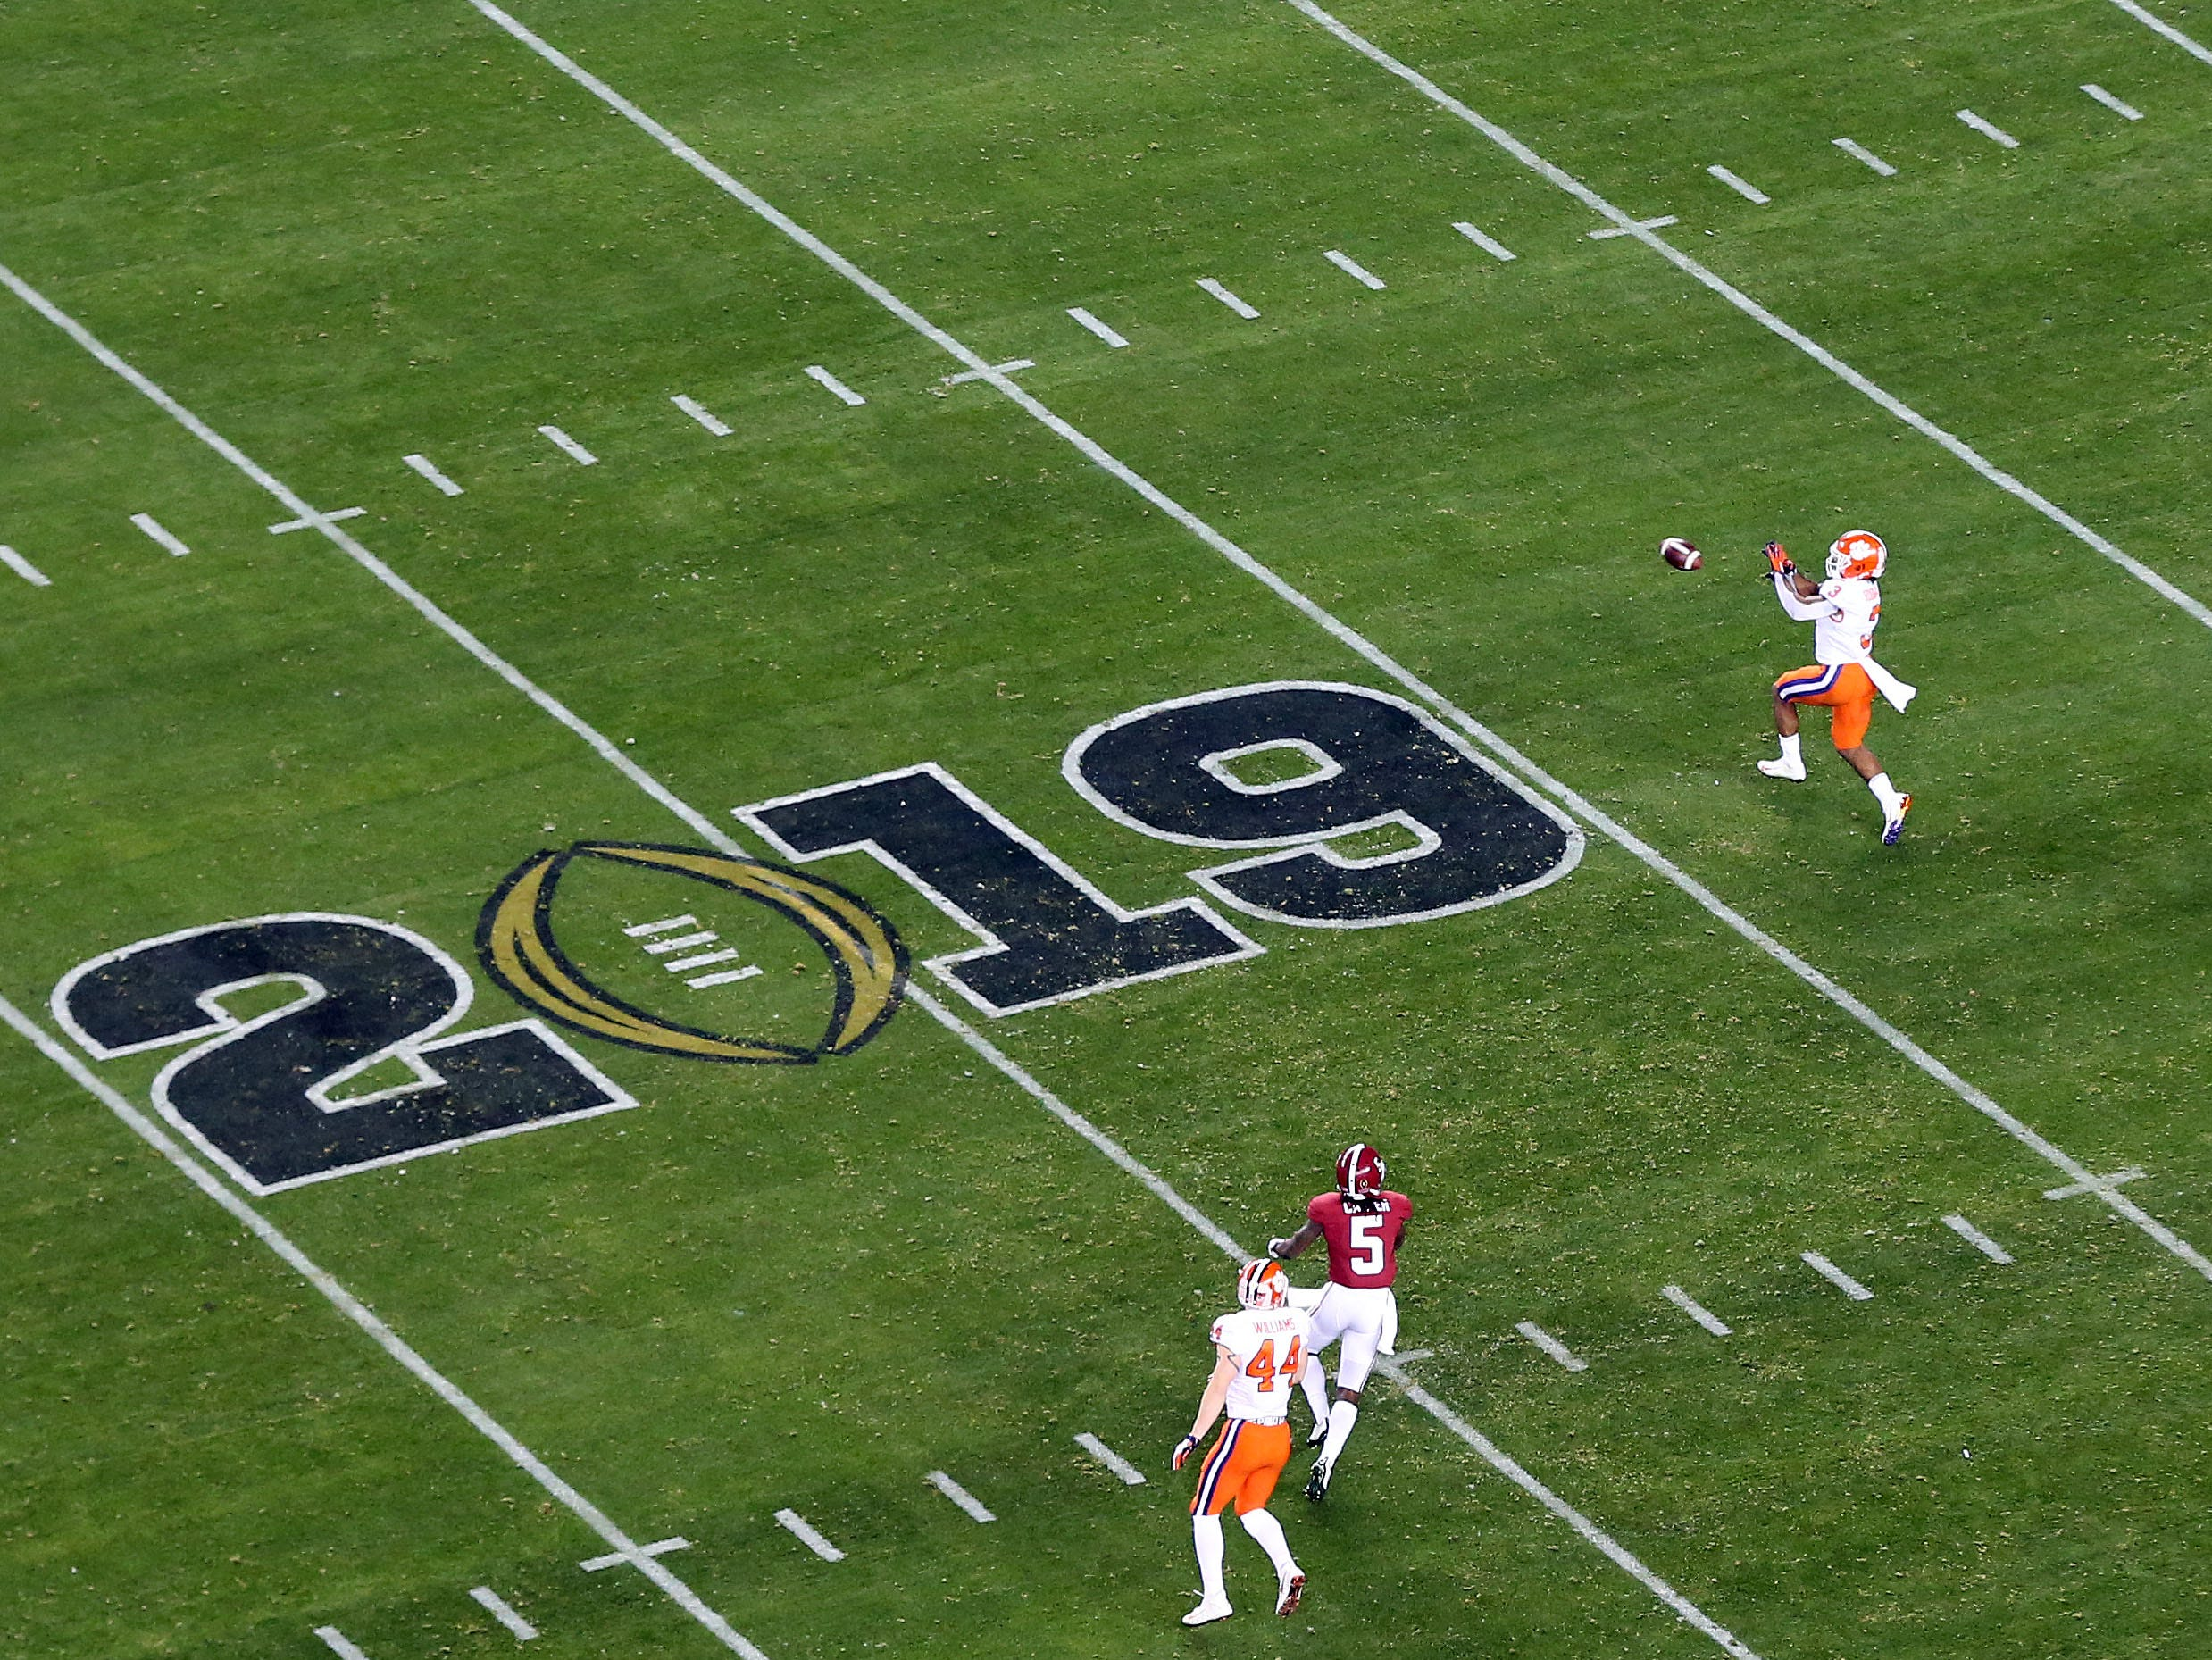 Jan 7, 2019; Santa Clara, CA, USA; Clemson Tigers wide receiver Amari Rodgers (3) makes a catch in the second quarter against the Alabama Crimson Tide during the 2019 College Football Playoff Championship game at Levi's Stadium. Mandatory Credit: James Lang-USA TODAY Sports